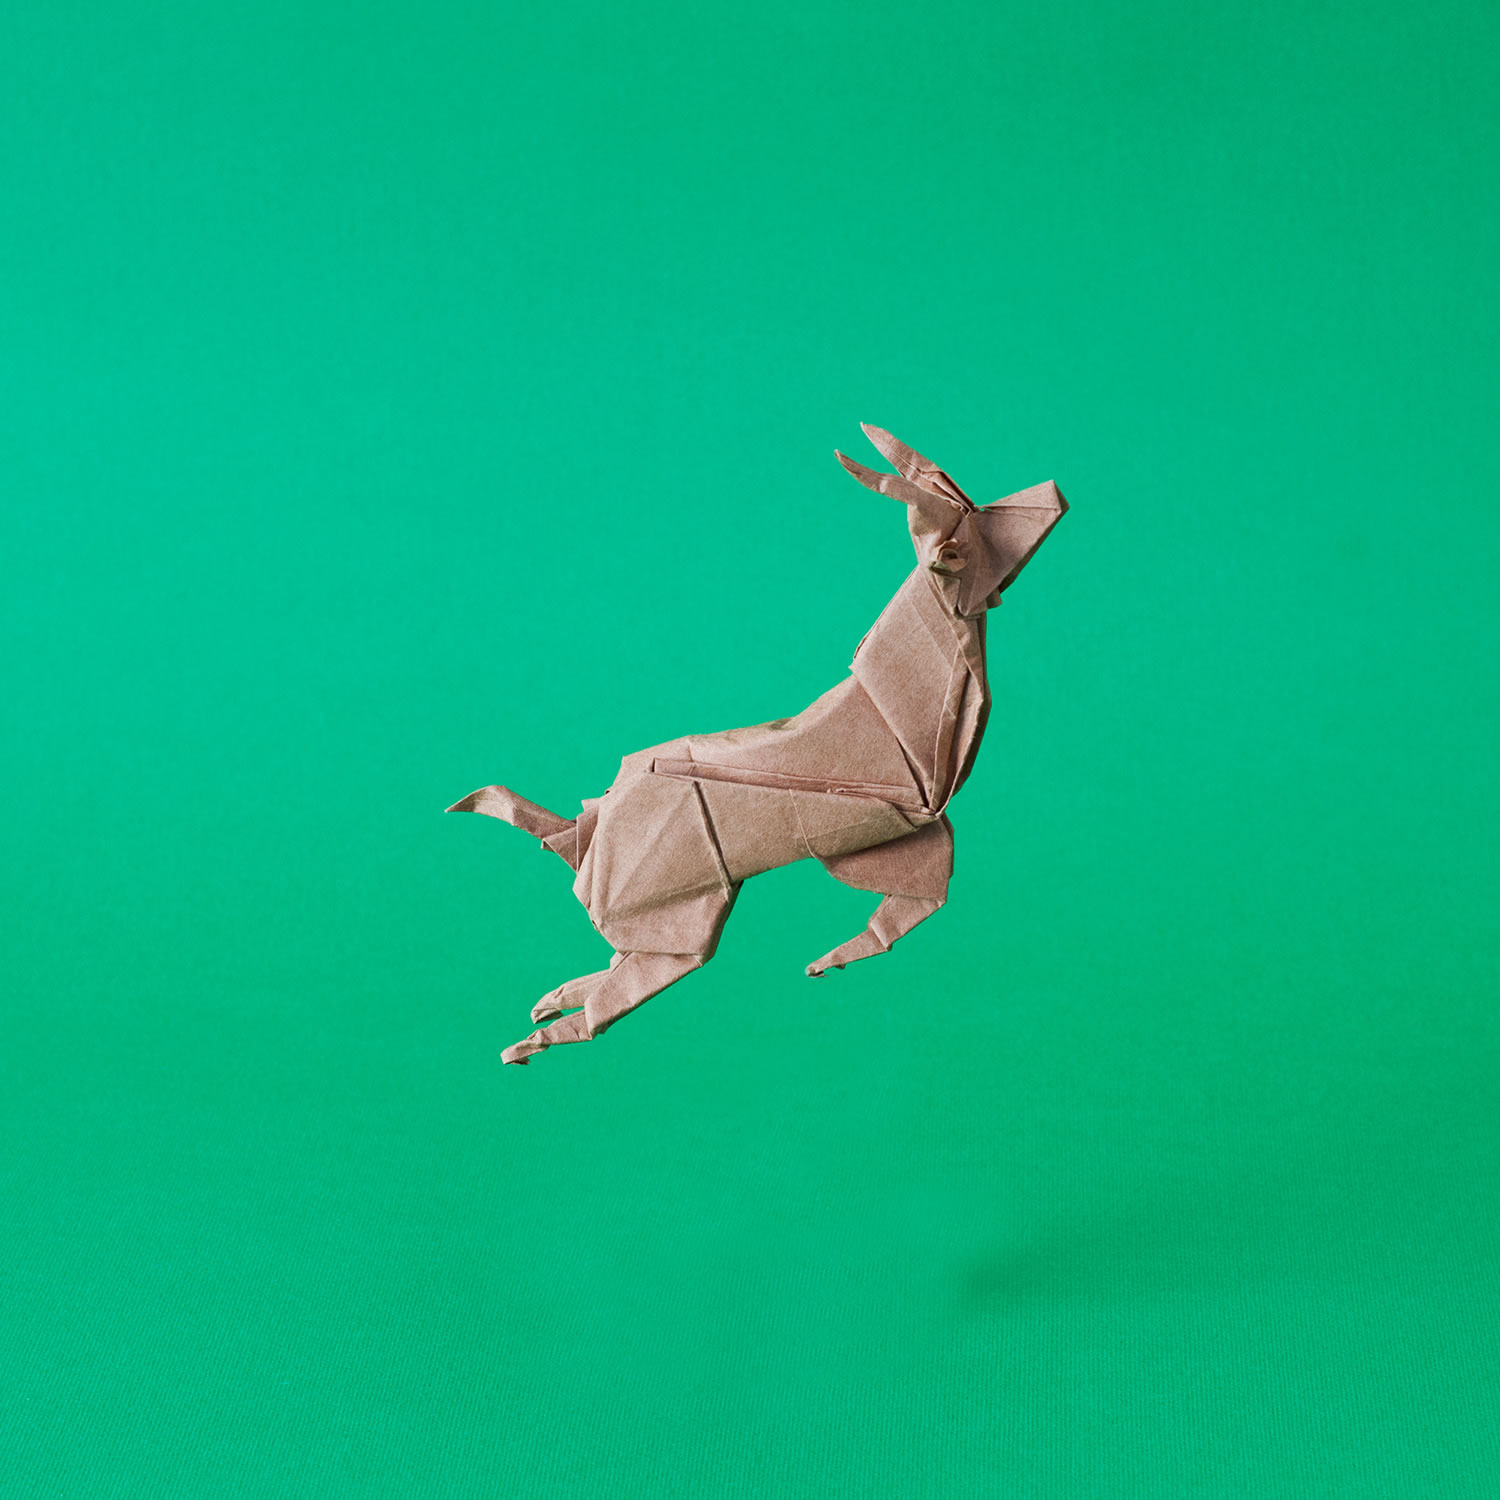 springbok jumping in the air, origami